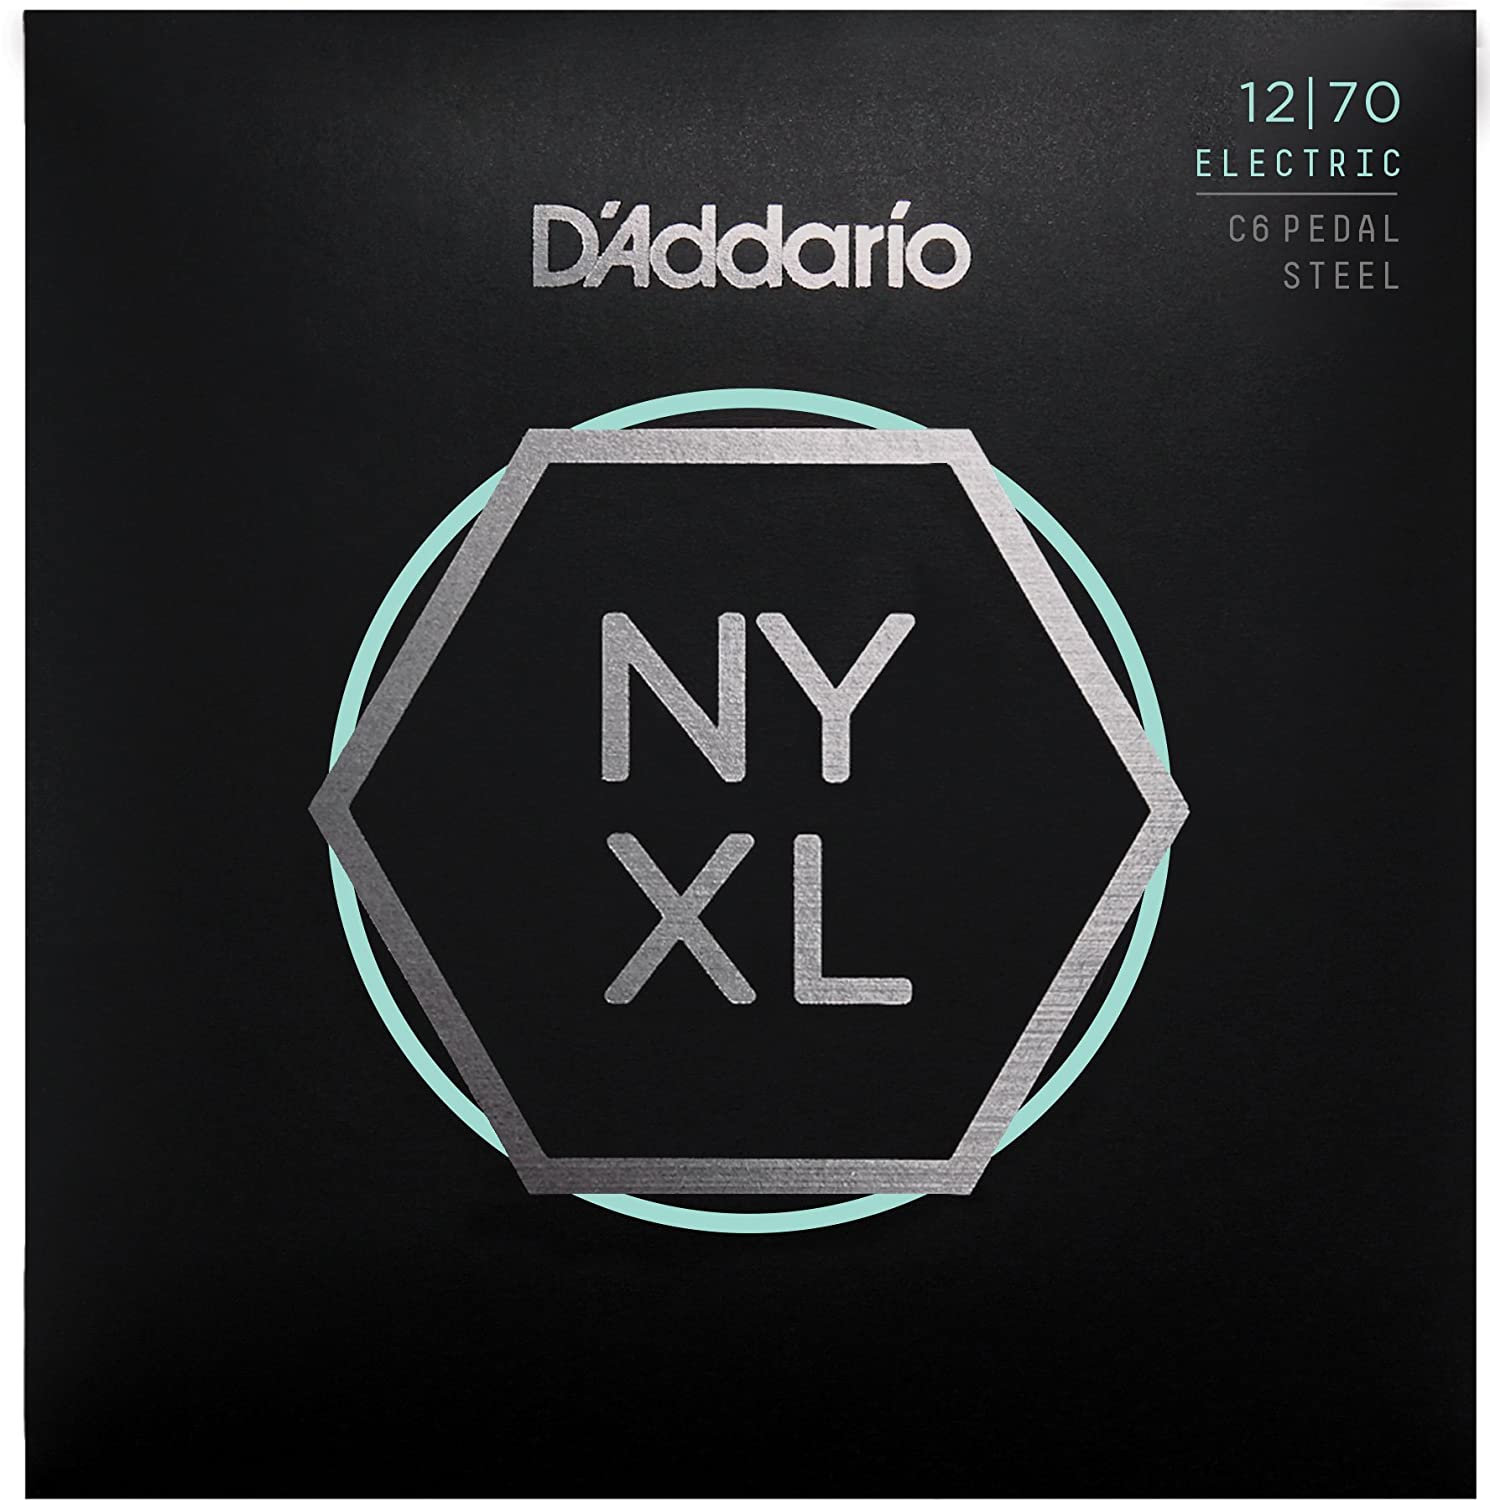 Amazon DAddario NYXL1270PS NYXL Nickel Wound Electric Guitar Strings Pedal Steel Custom Medium 12 70 Musical Instruments